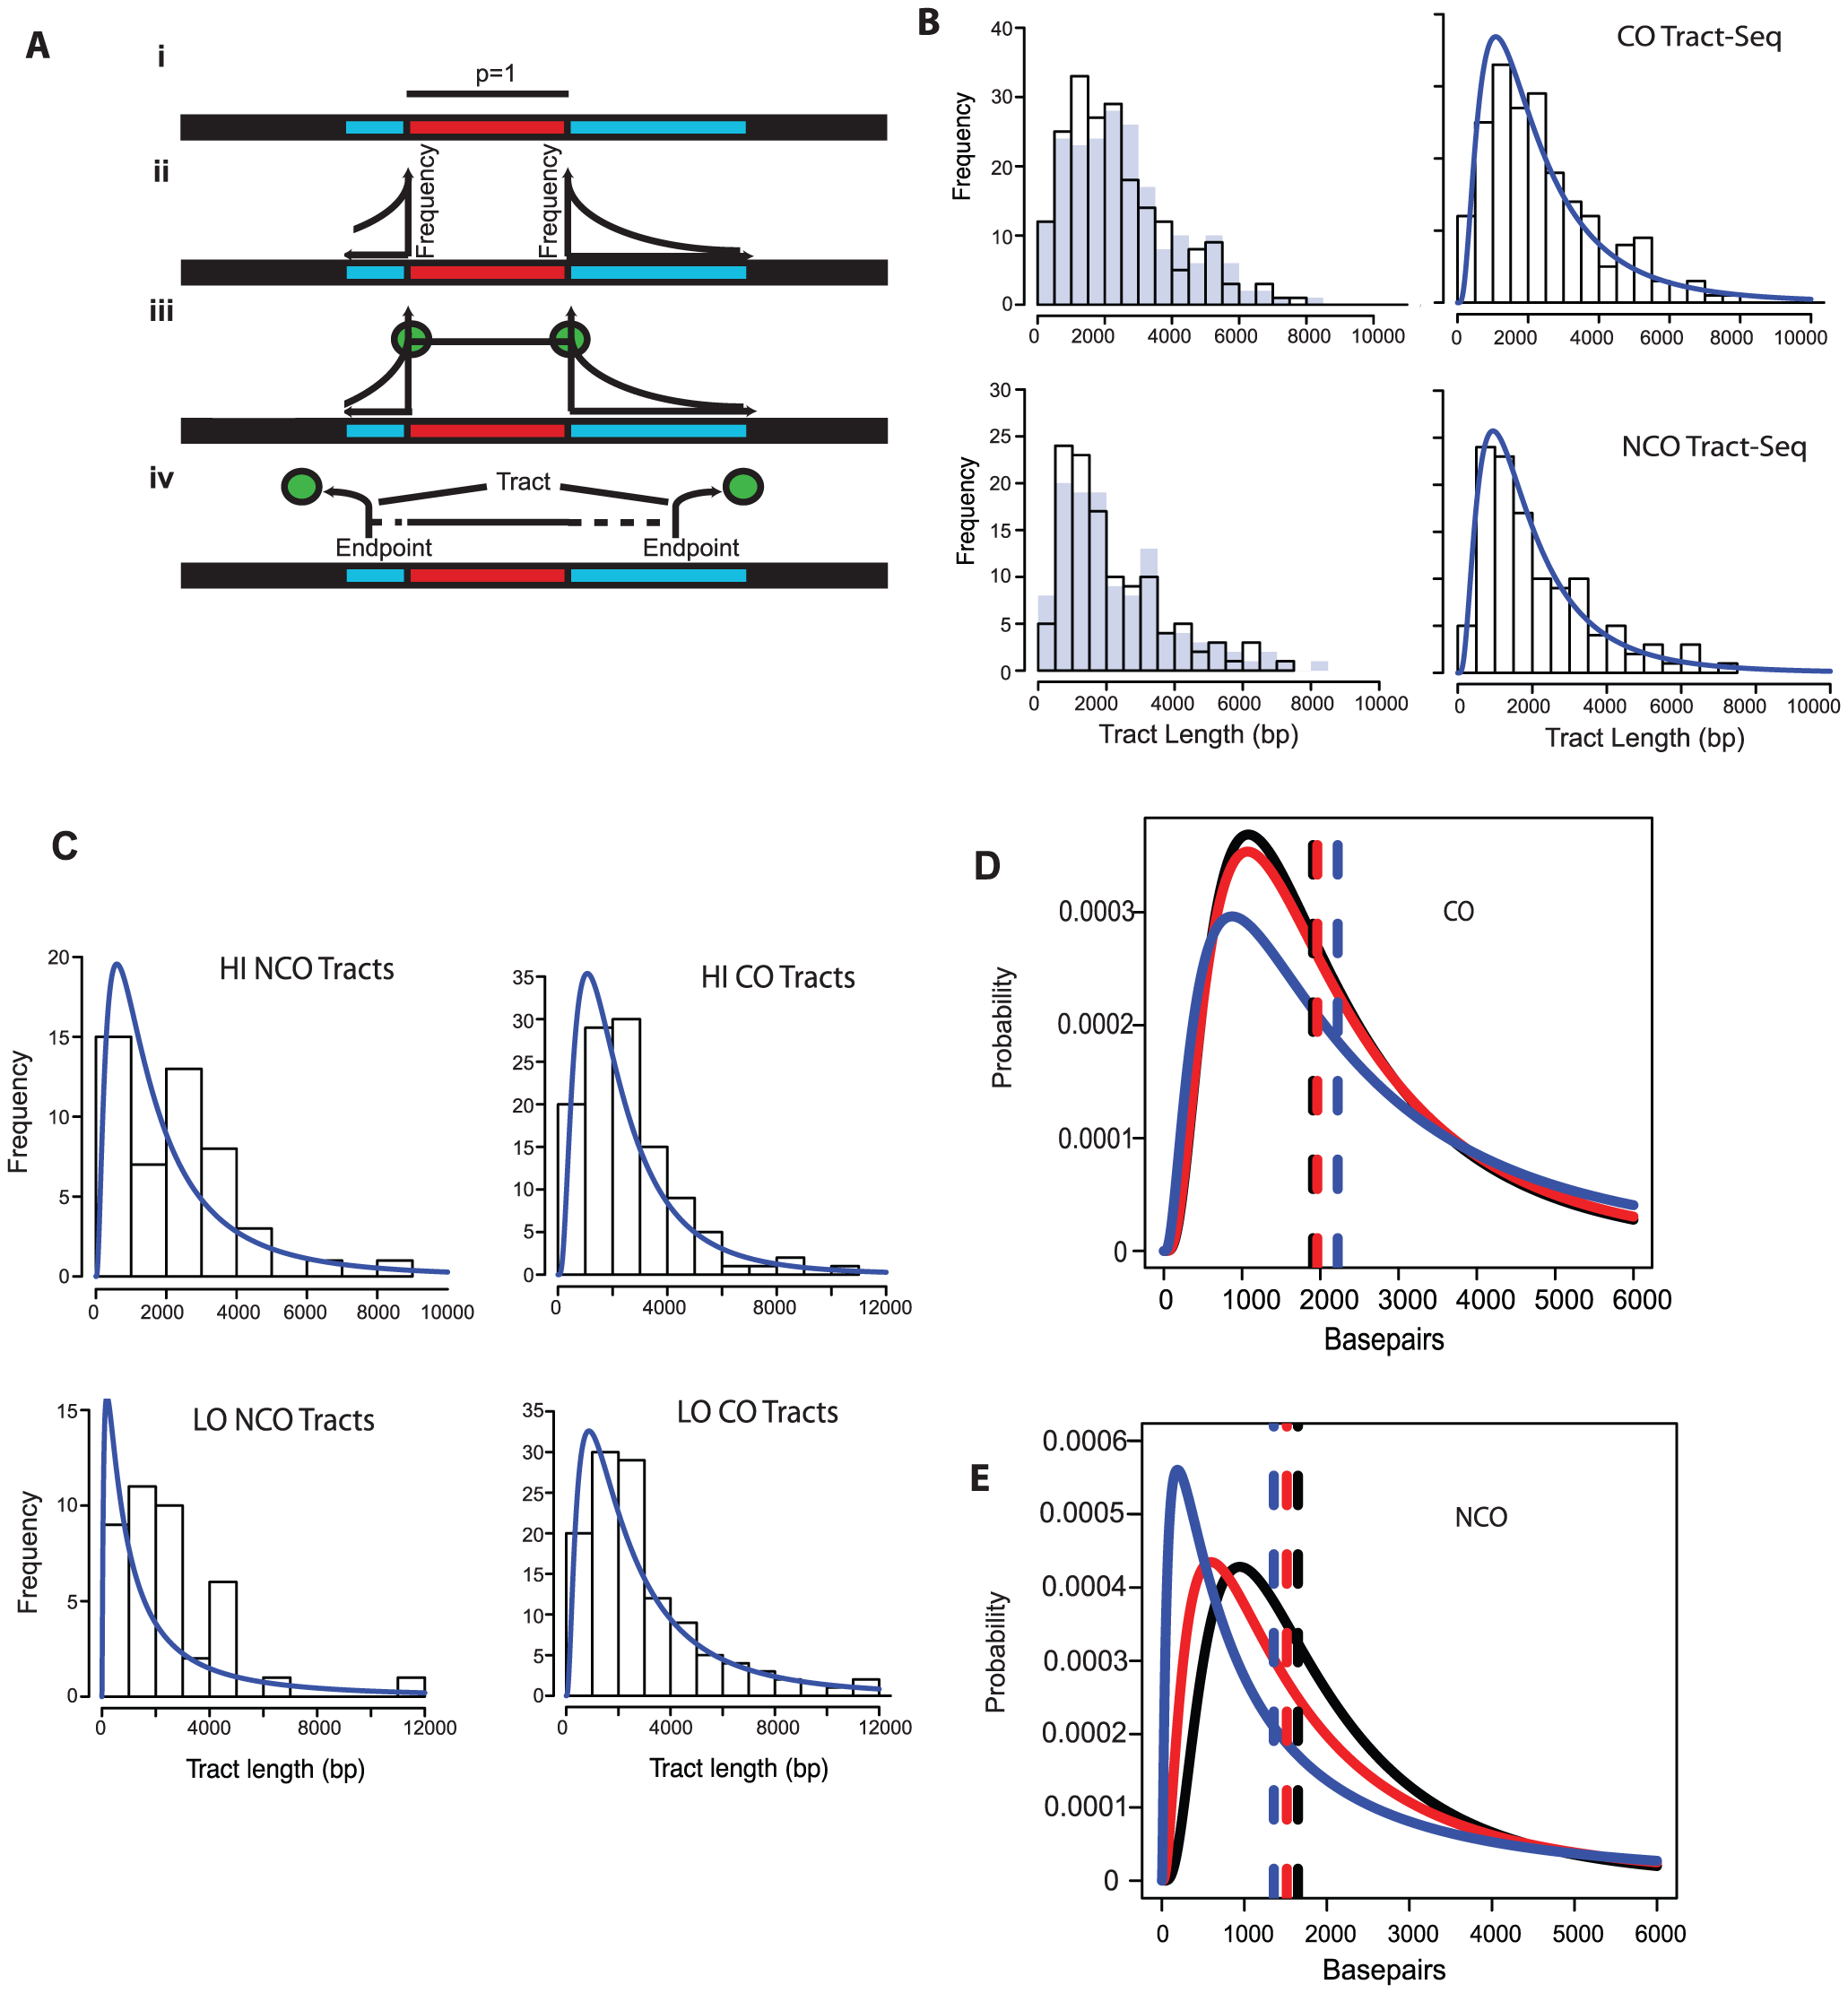 Tract-Seq and summary of sequence data.